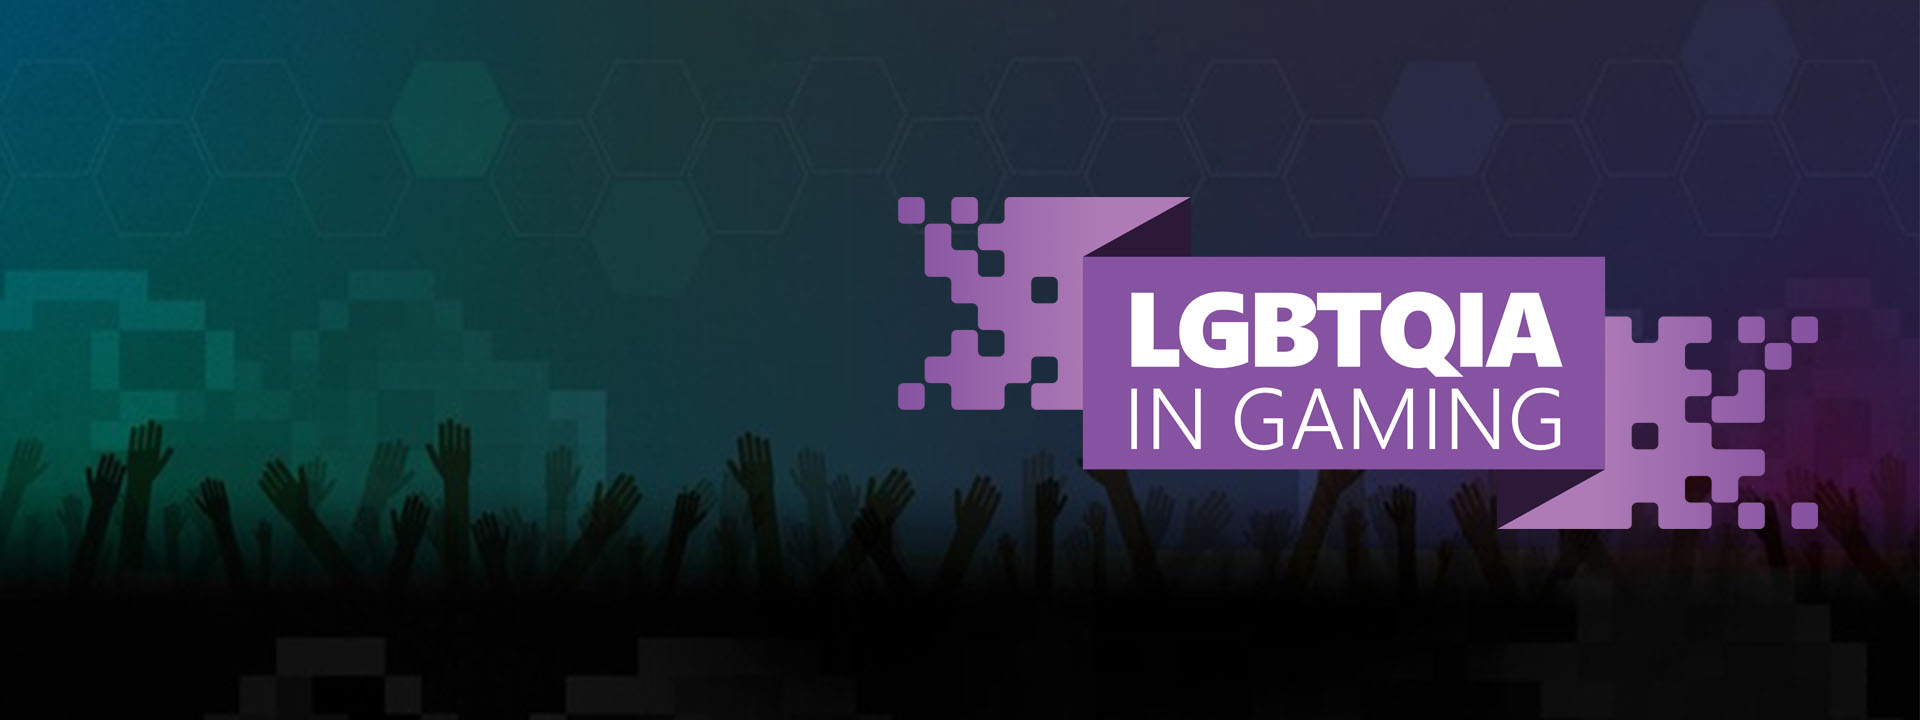 LGBTQIA in Gaming Event Logo